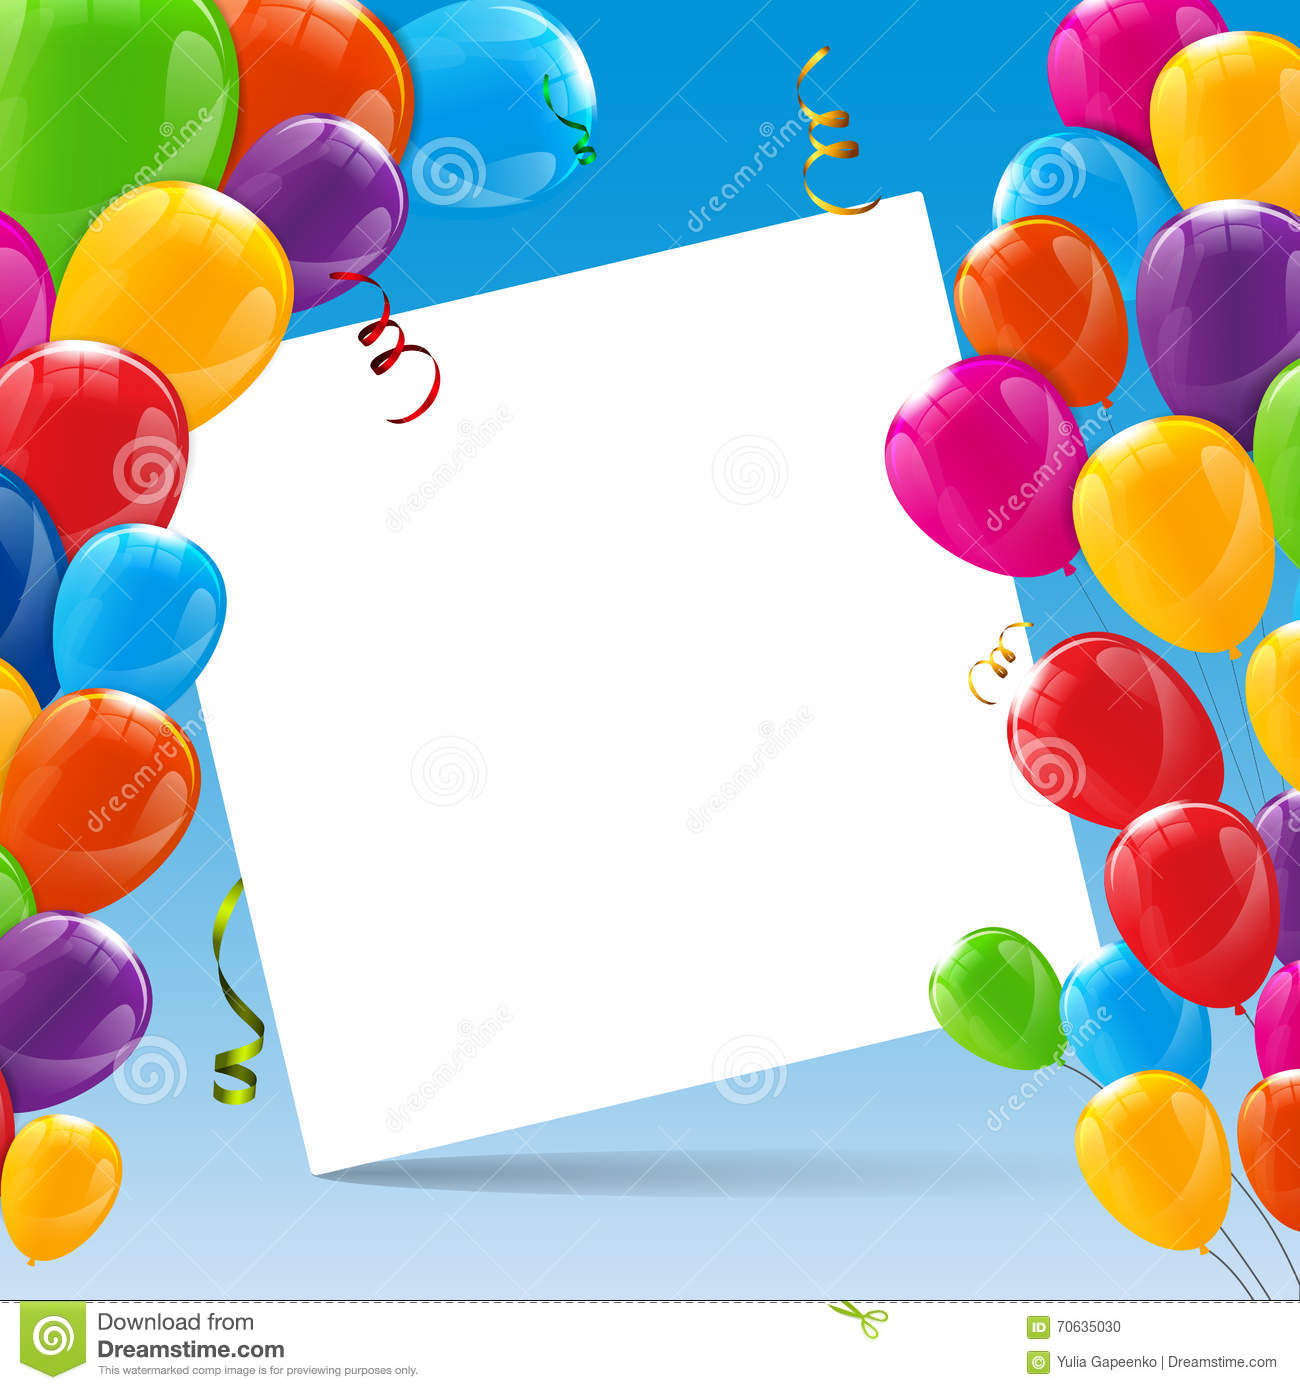 Color Glossy Happy Birthday Balloons Banner Background ...